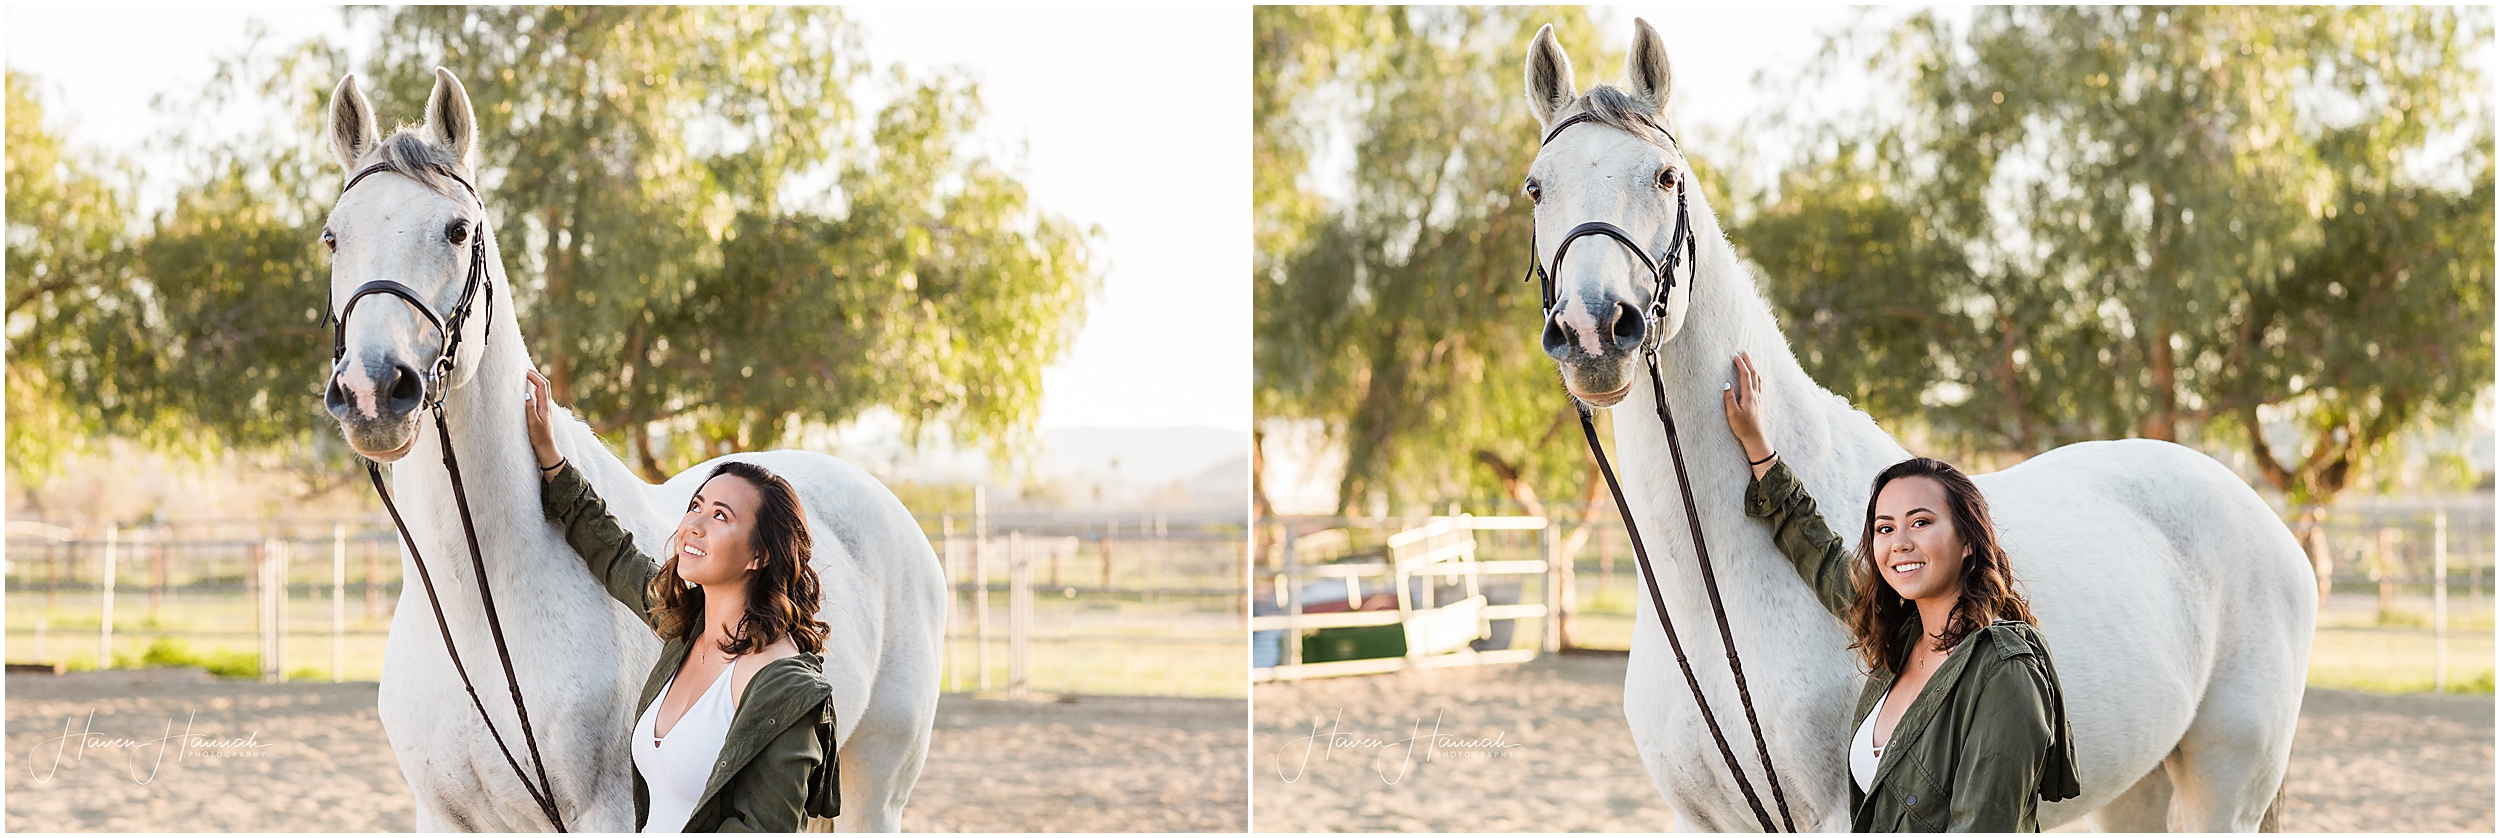 los-angeles-equestrian-photography